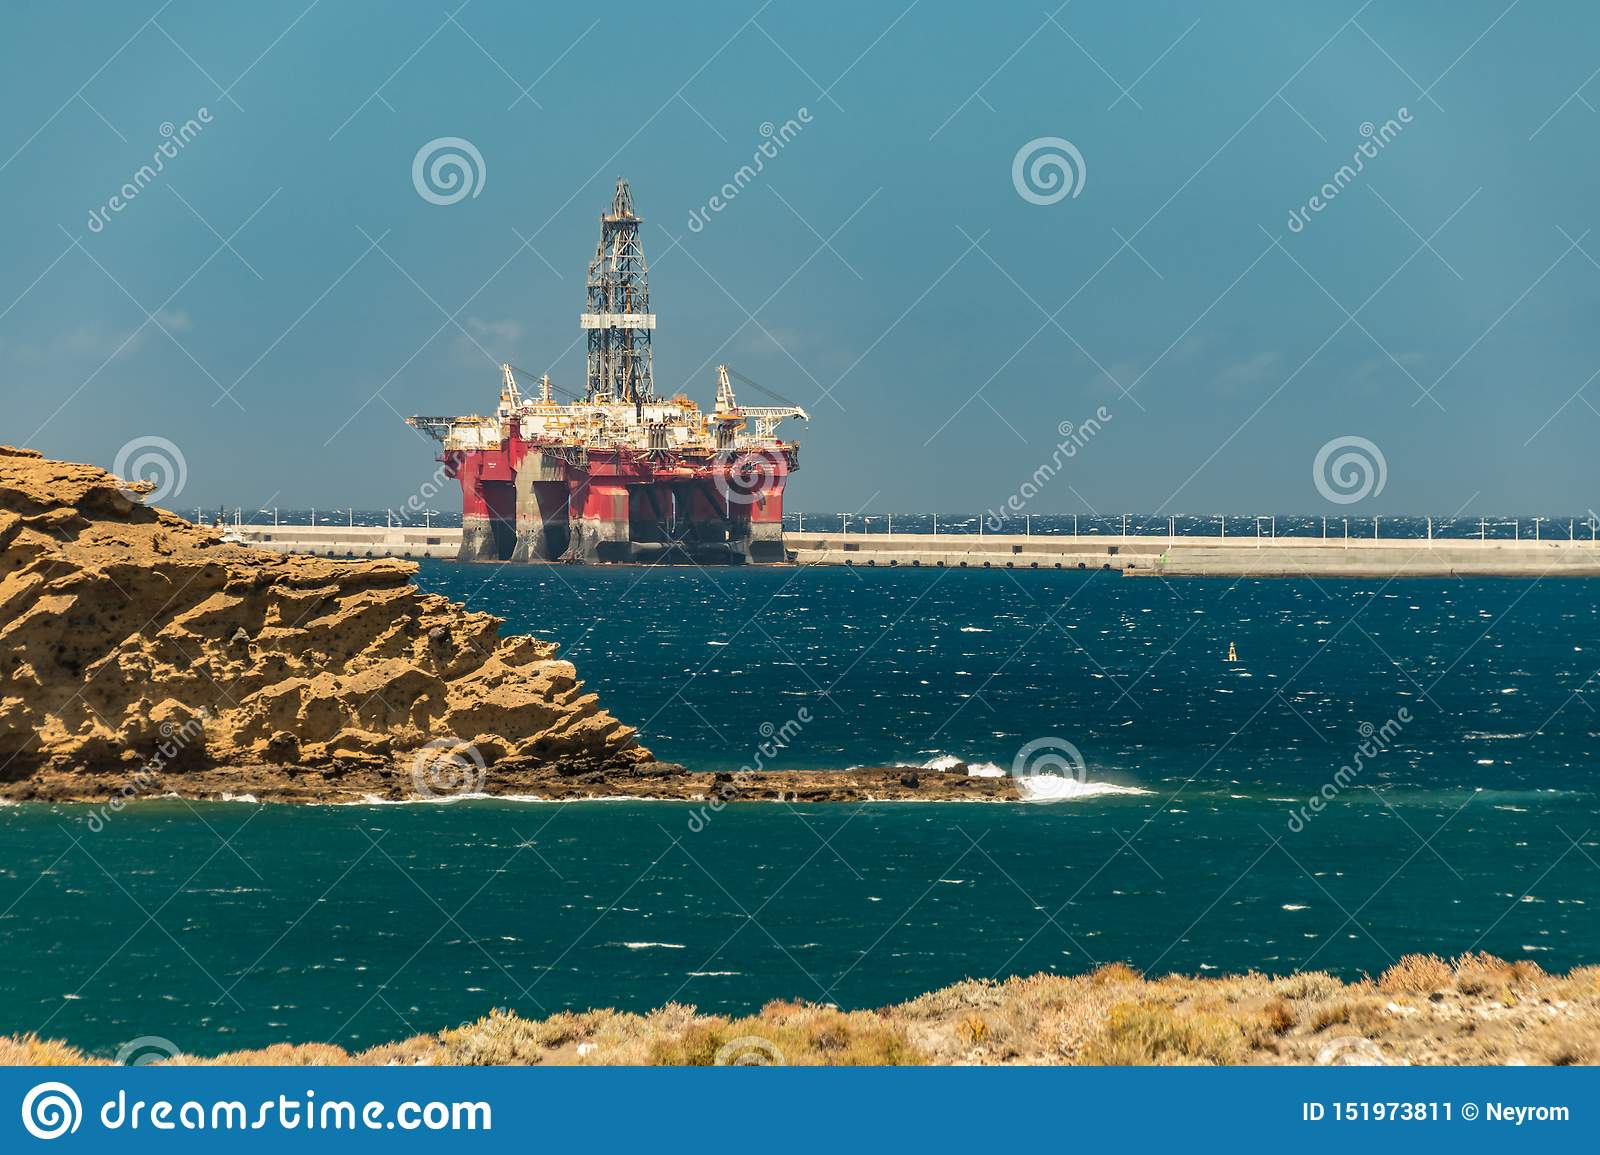 View from the coast of oil offshore rig moored in the port of Granadilla on Tenerife